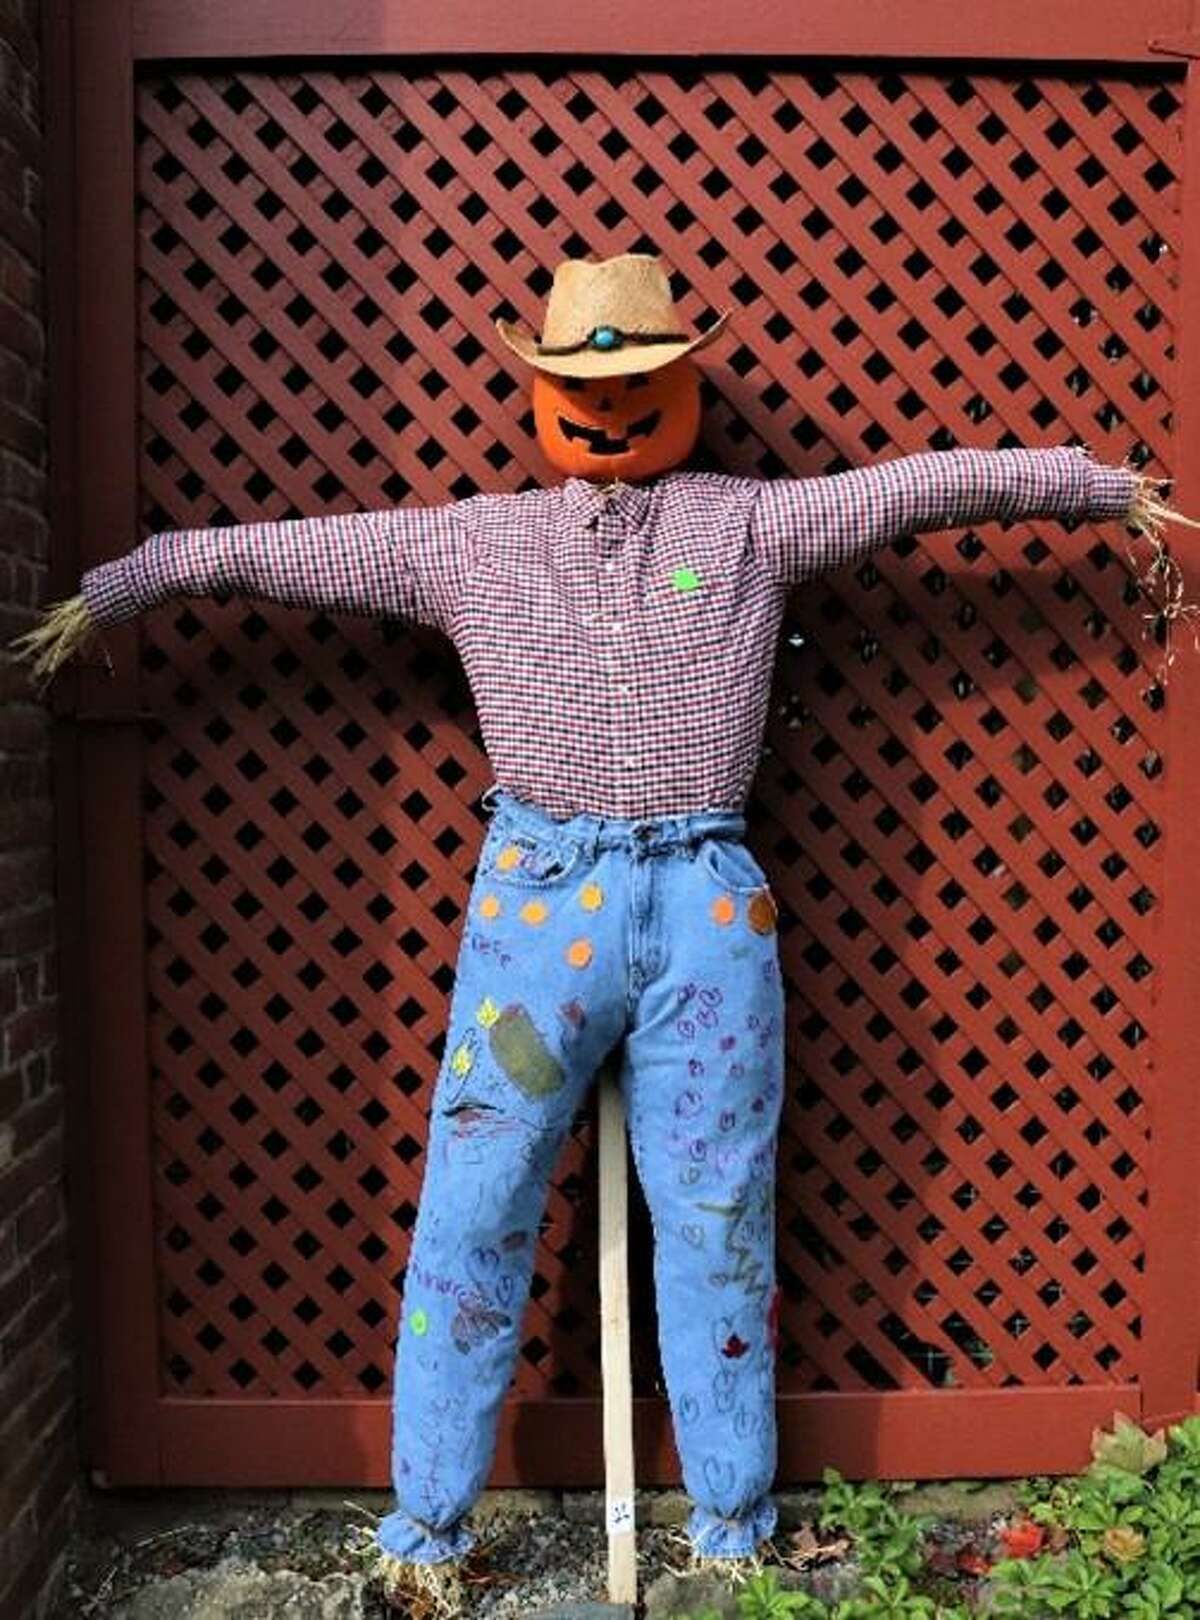 Mr. Pumpkin Head won the 2019 People's Choice vote on Facebook in Keeler Tavern Museum & History Center's 7th annual Scarecrow Contest.